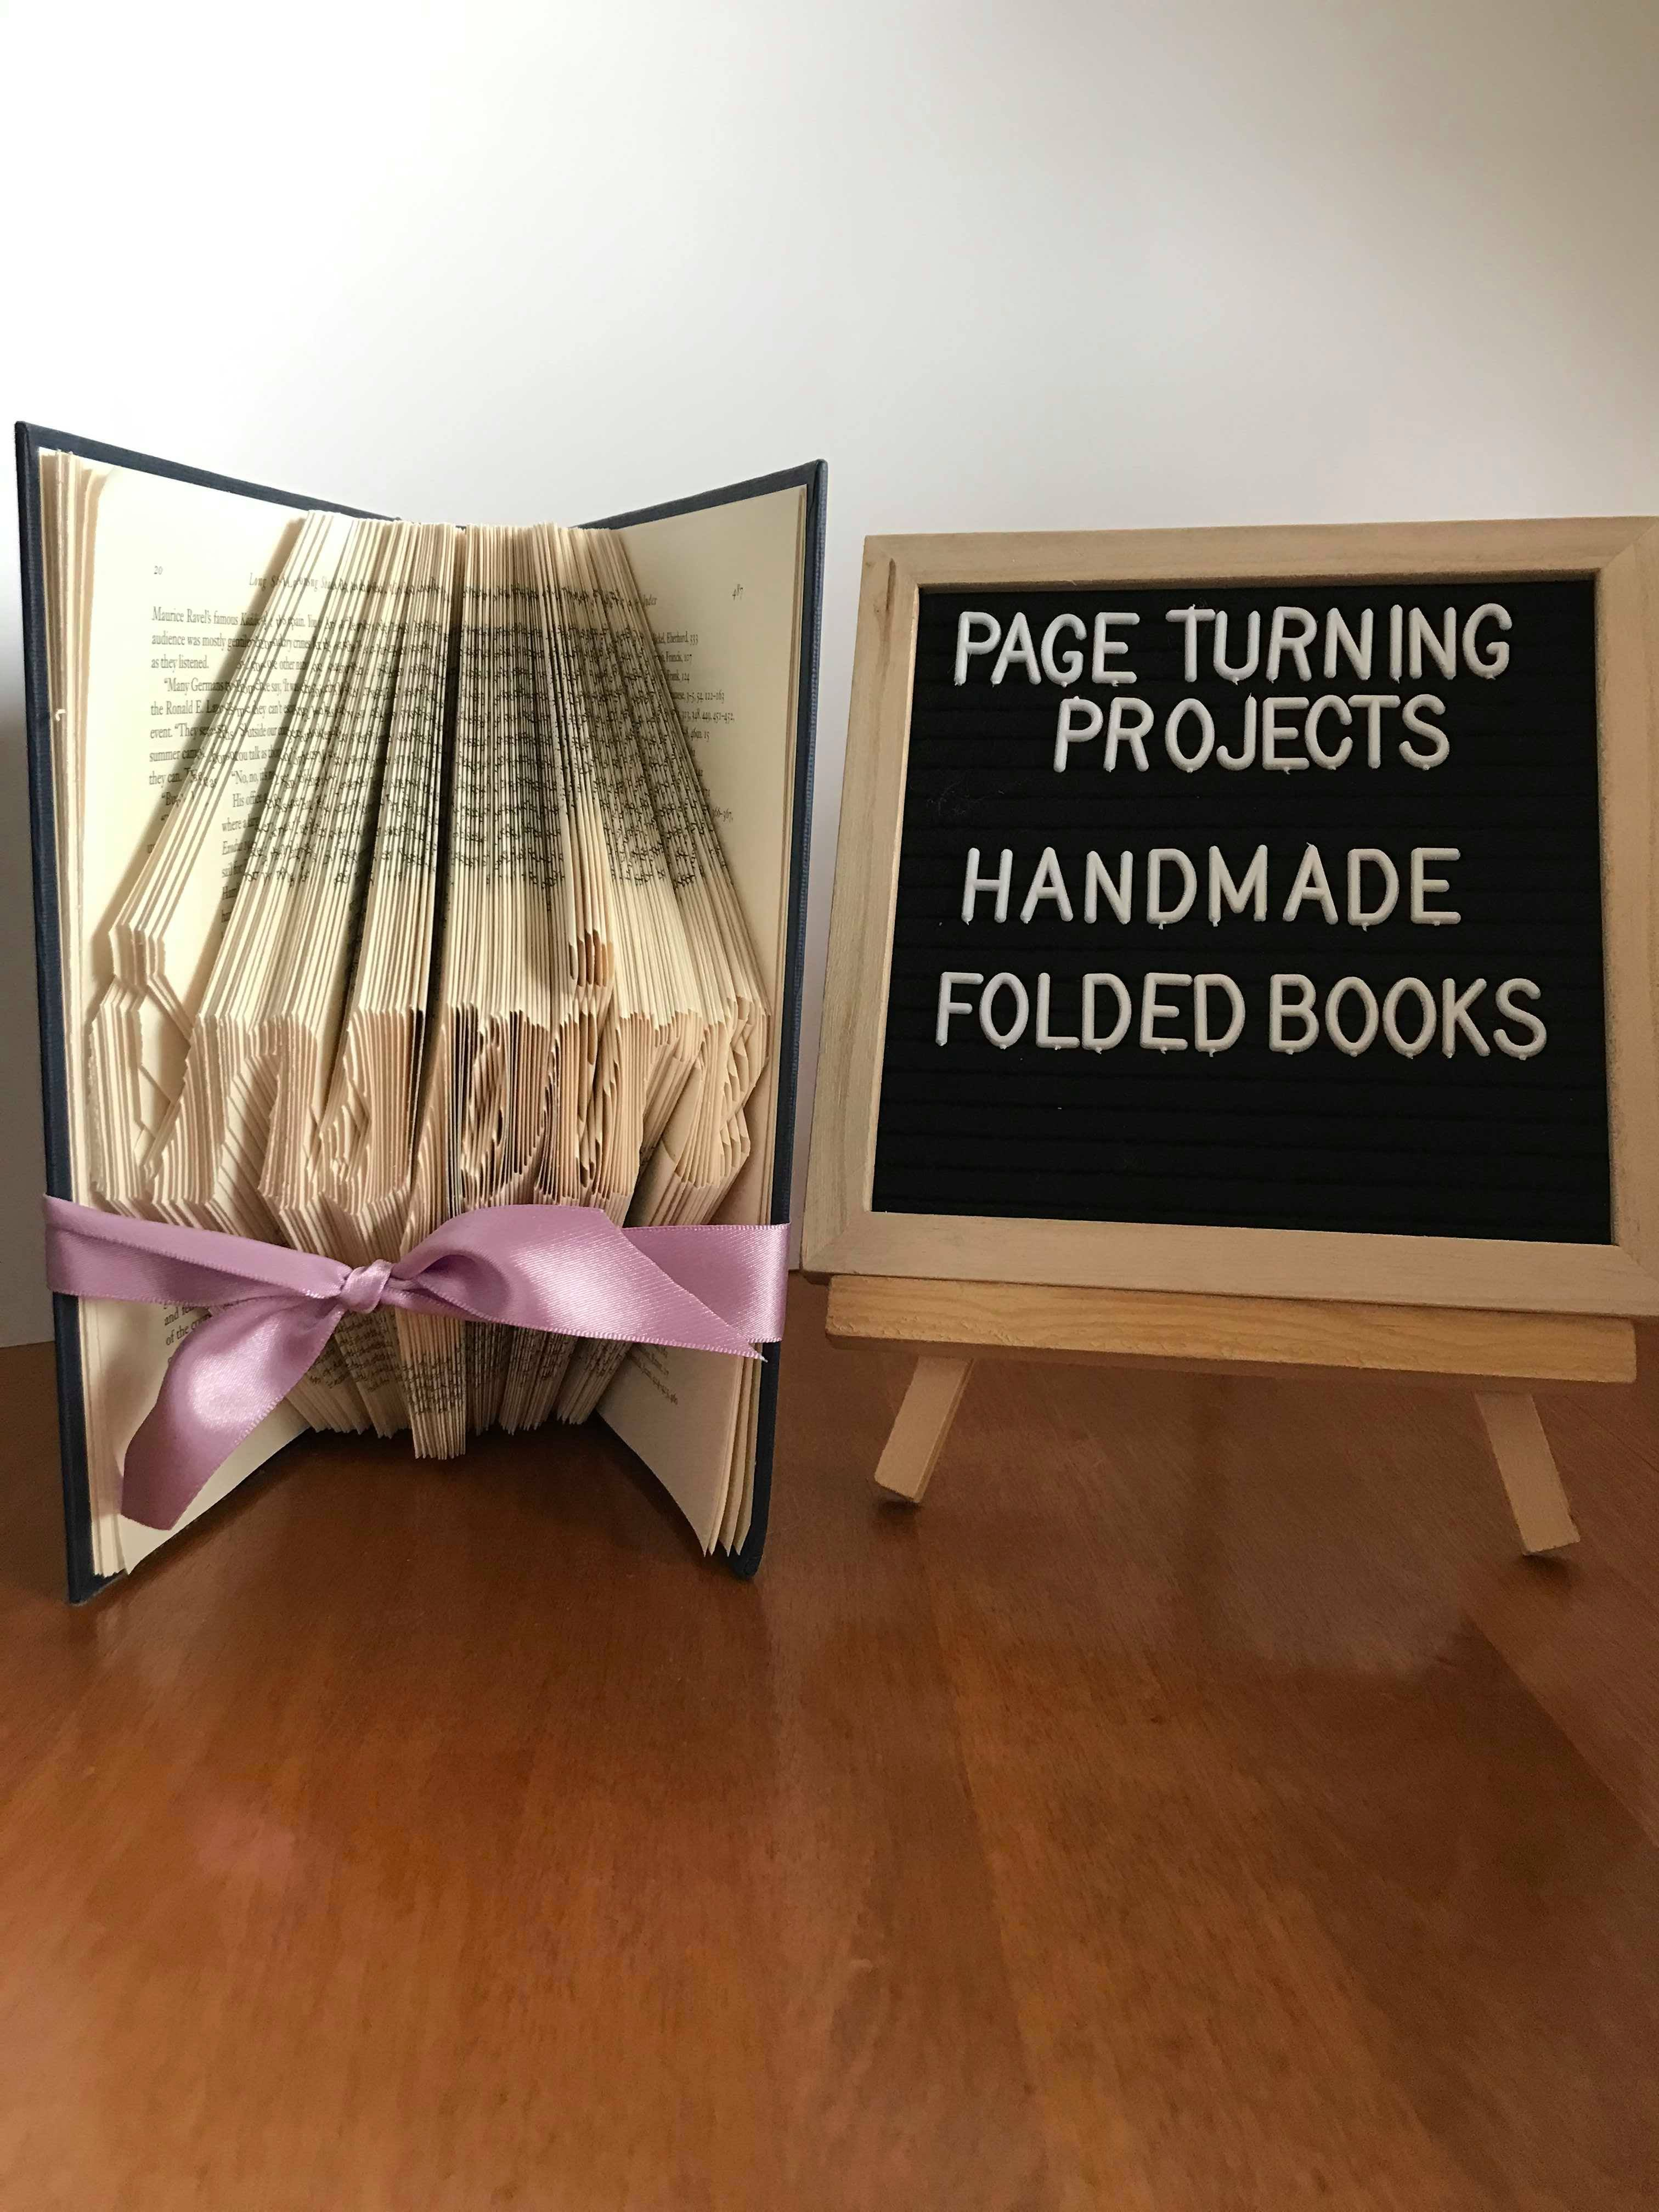 Check us out on tiktok in 2020 book folding diy crafts